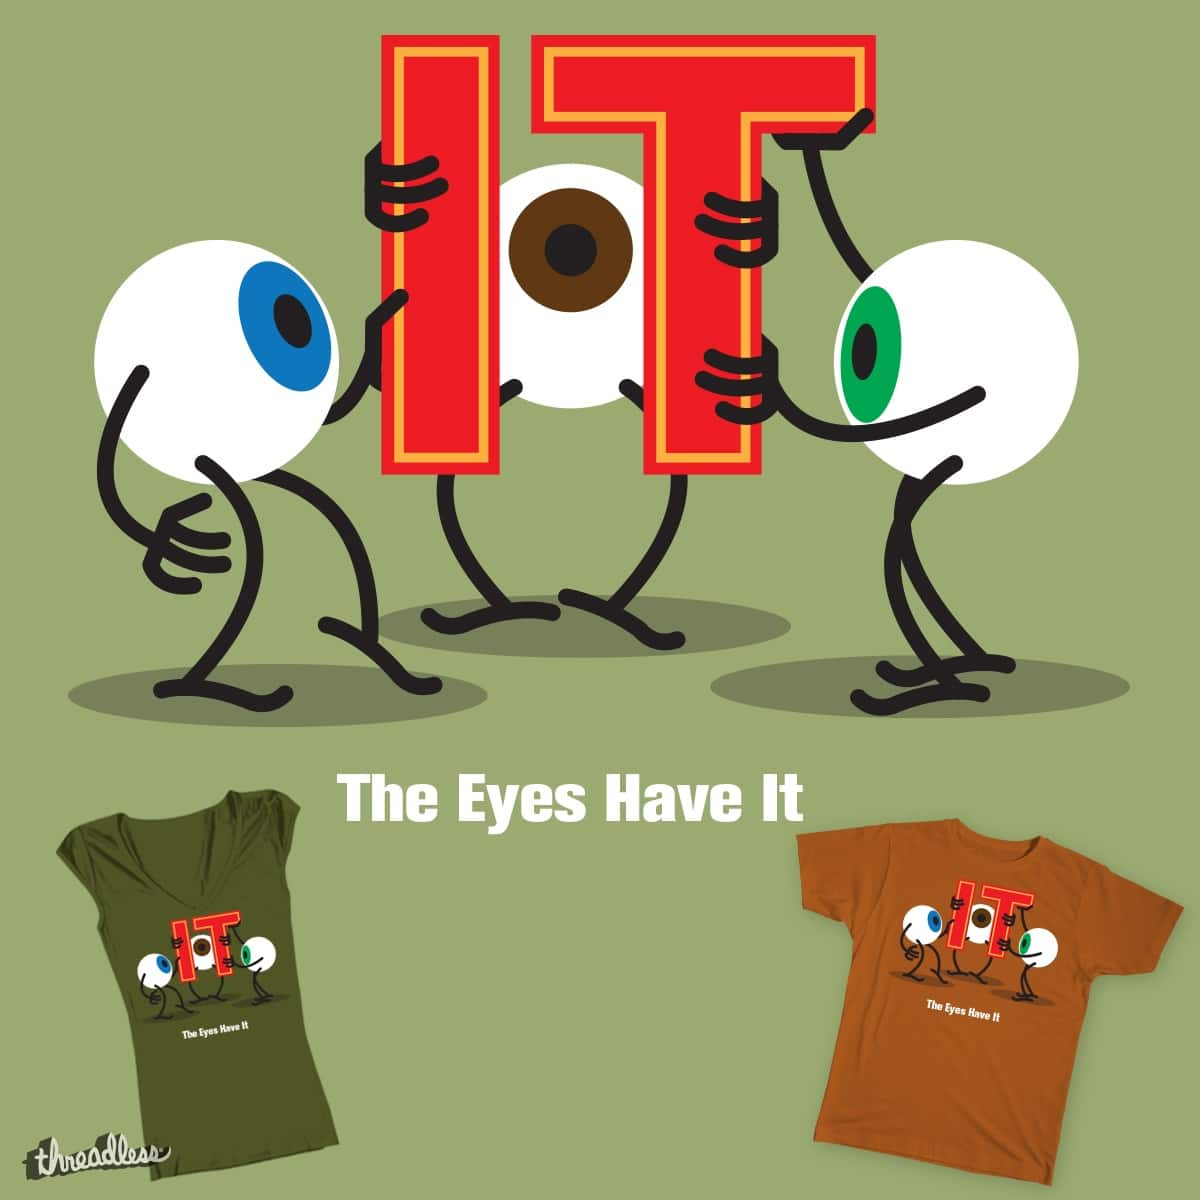 The Eyes Have It by Orlan on Threadless